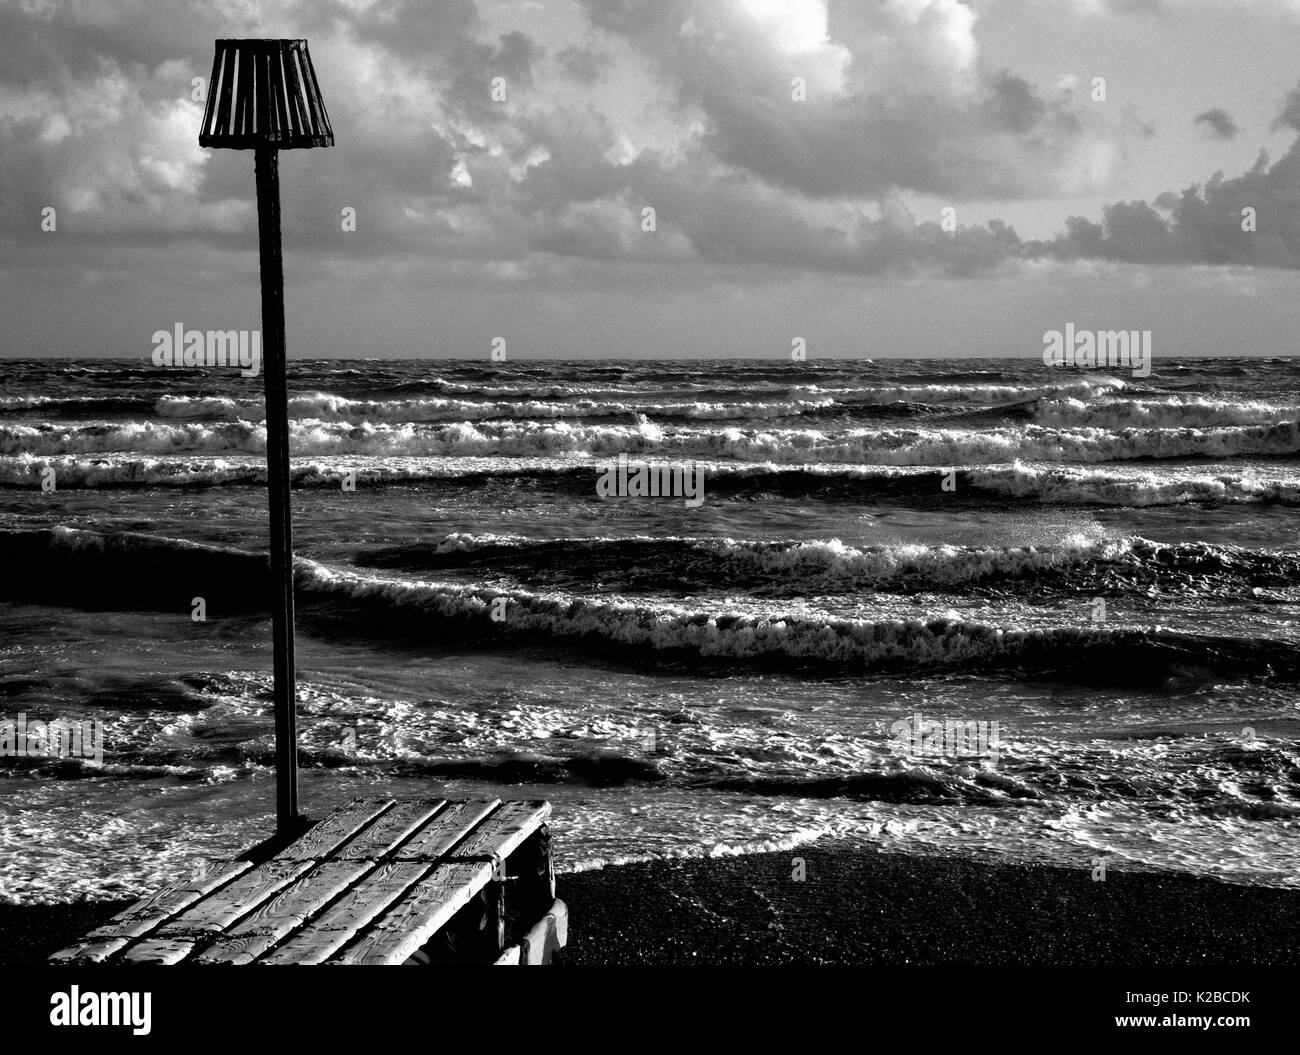 AJAXNETPHOTO. WORTHING, ENGLAND. - STORMY SEAS ON THE SOUTH COAST AFTER AUTUMNAL GALES. PHOTO;JONATHAN EASTLAND/AJAX REF:P78_132810_145 - Stock Image